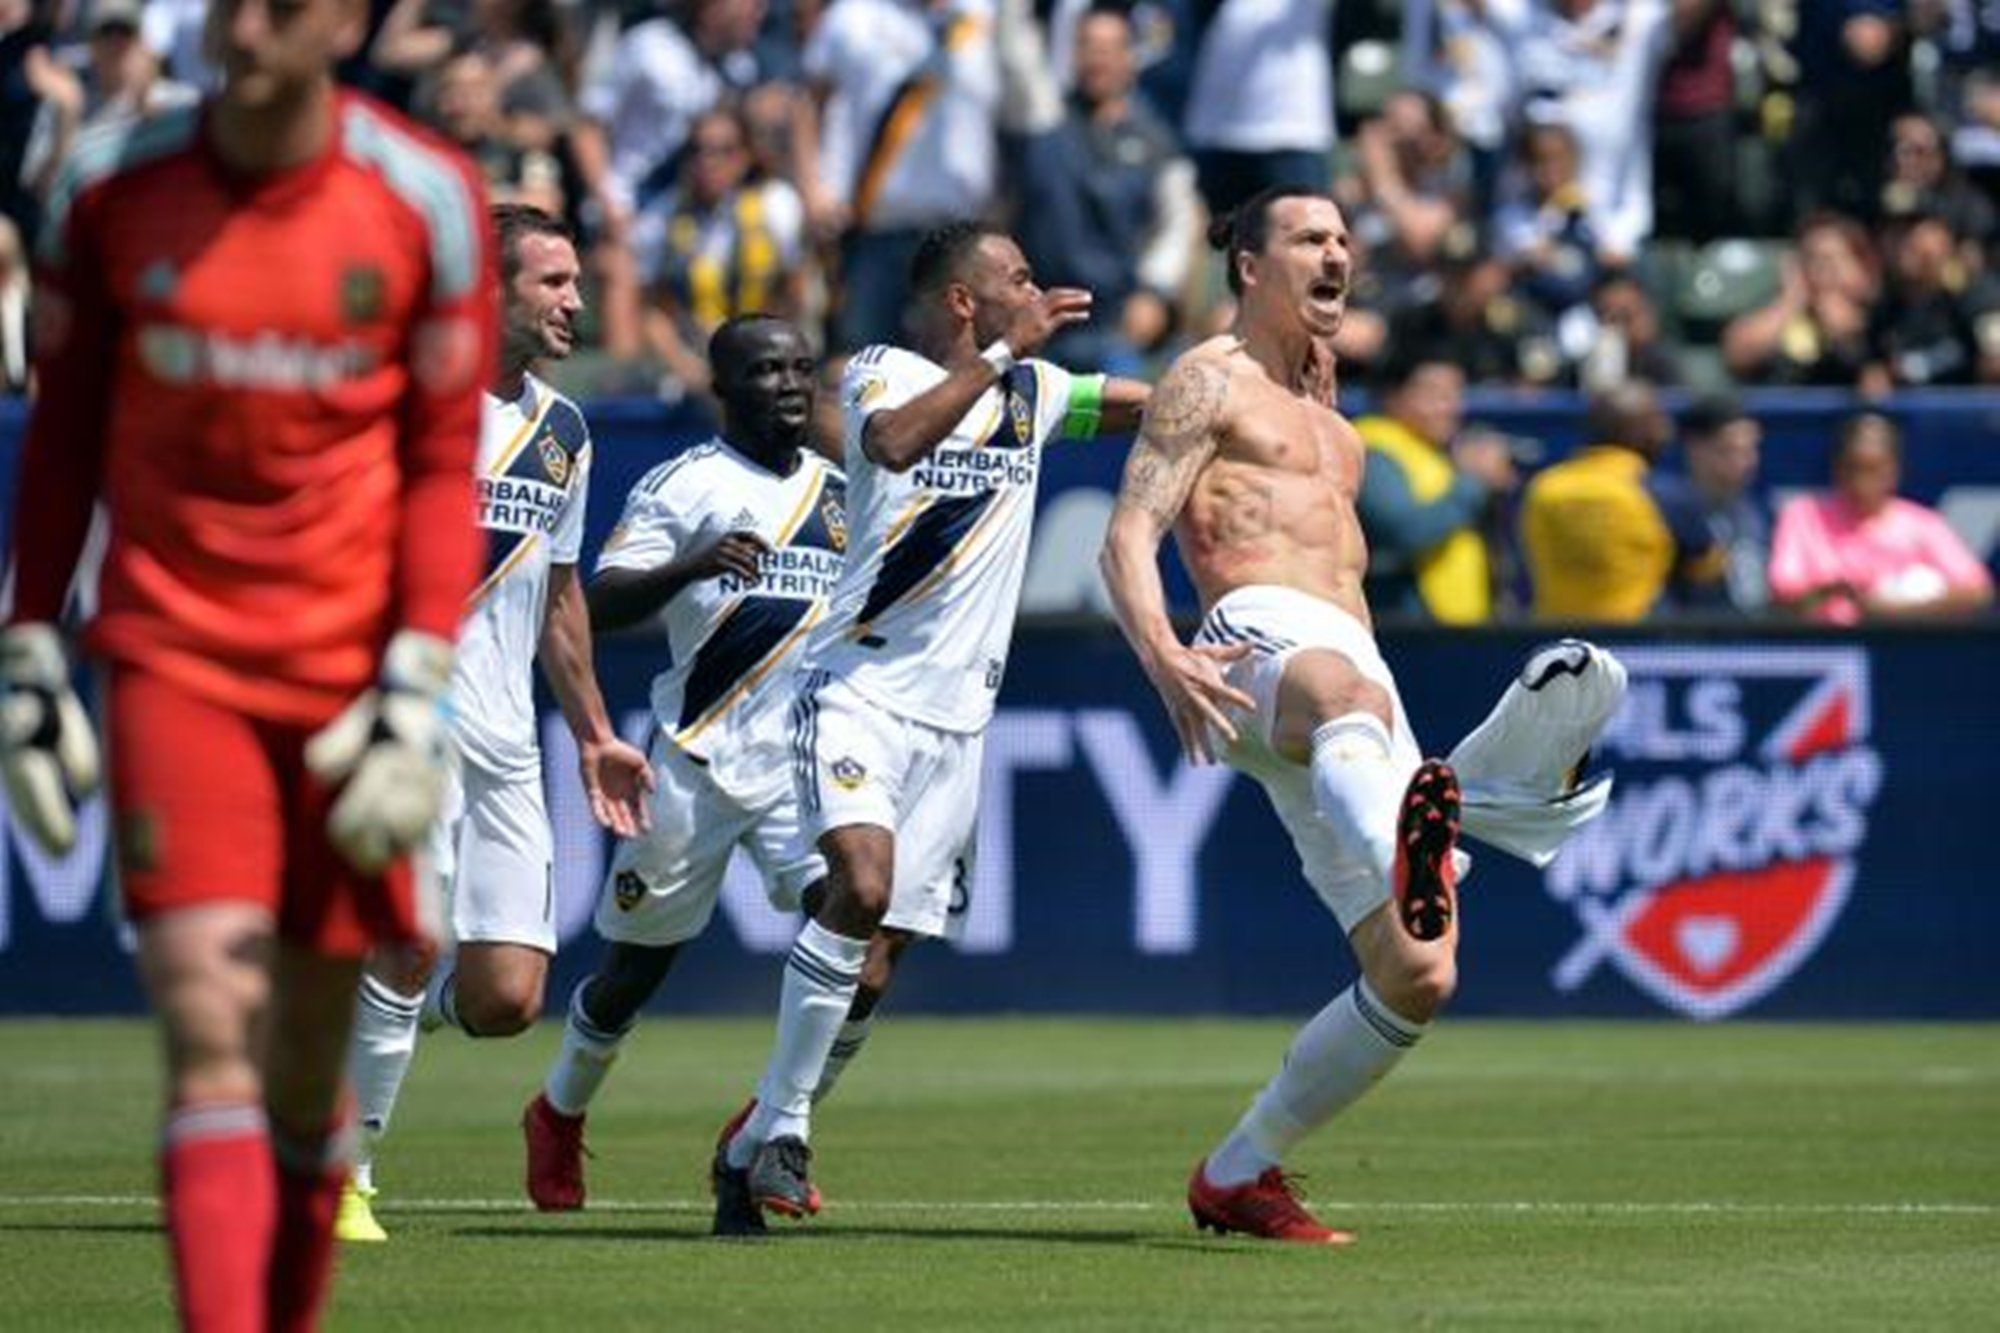 Zlatan Ibrahimovic Stuns Soccer Fans In Debut With La Galaxy Video Of His Second Goal Has Gone Viral La Galaxy Soccer Fans Zlatan Ibrahimovic